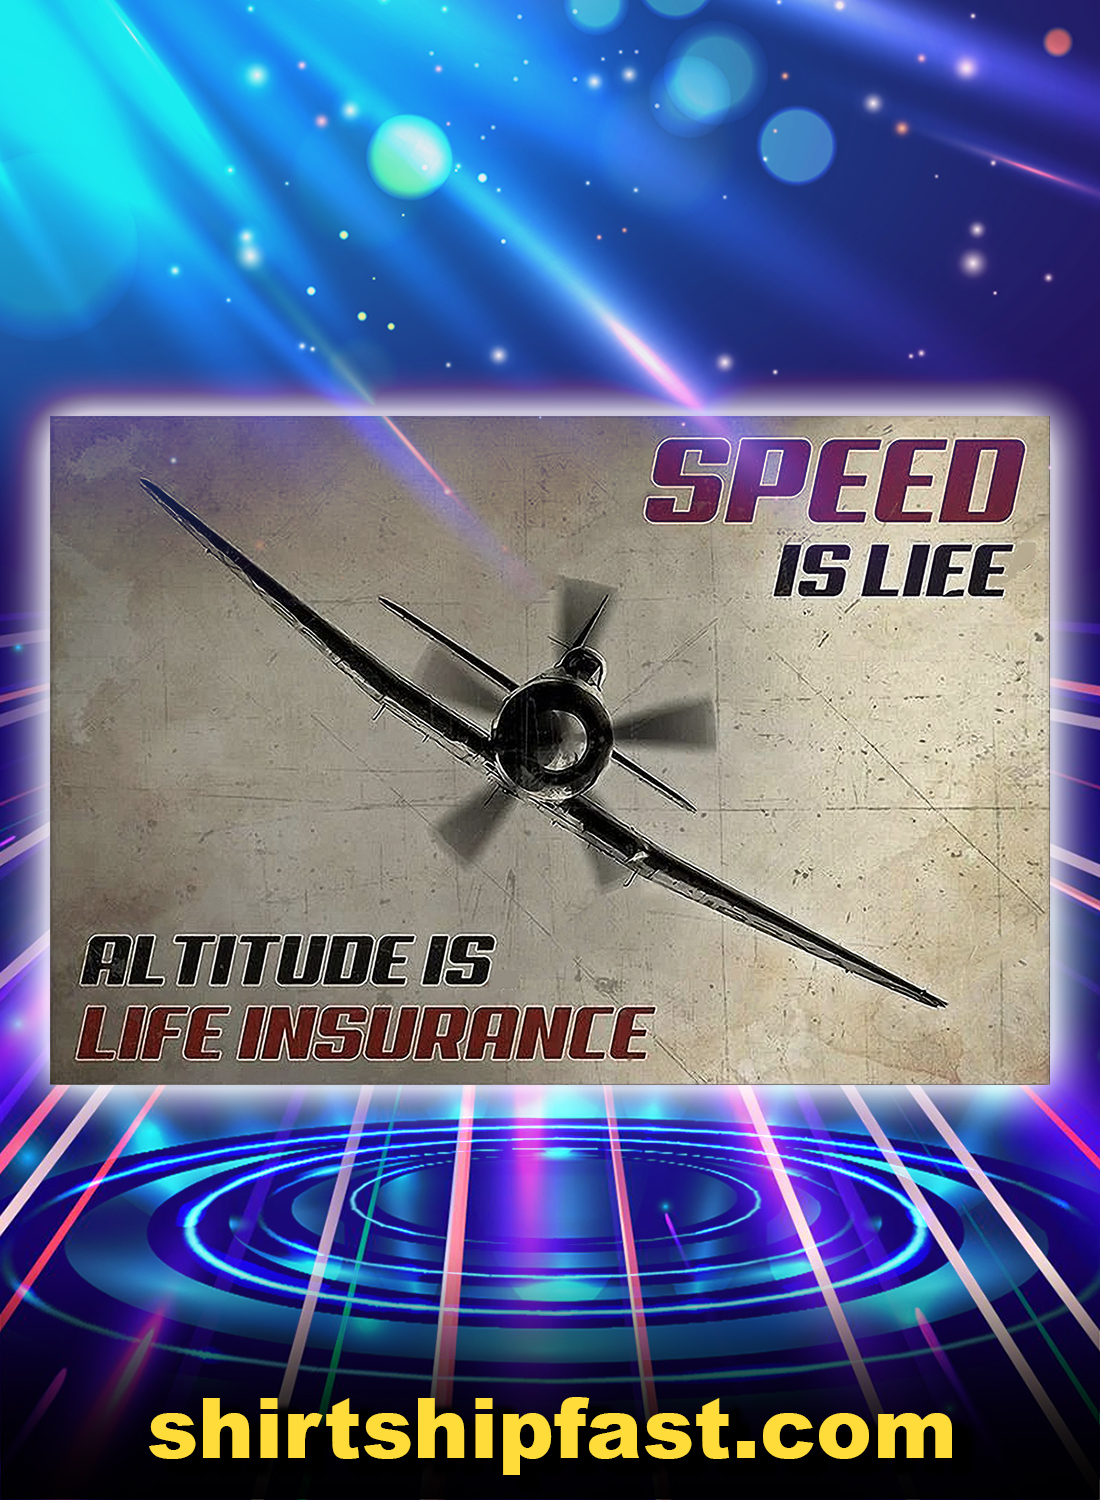 Pilot speed is life altitude is life insurance poster - A4